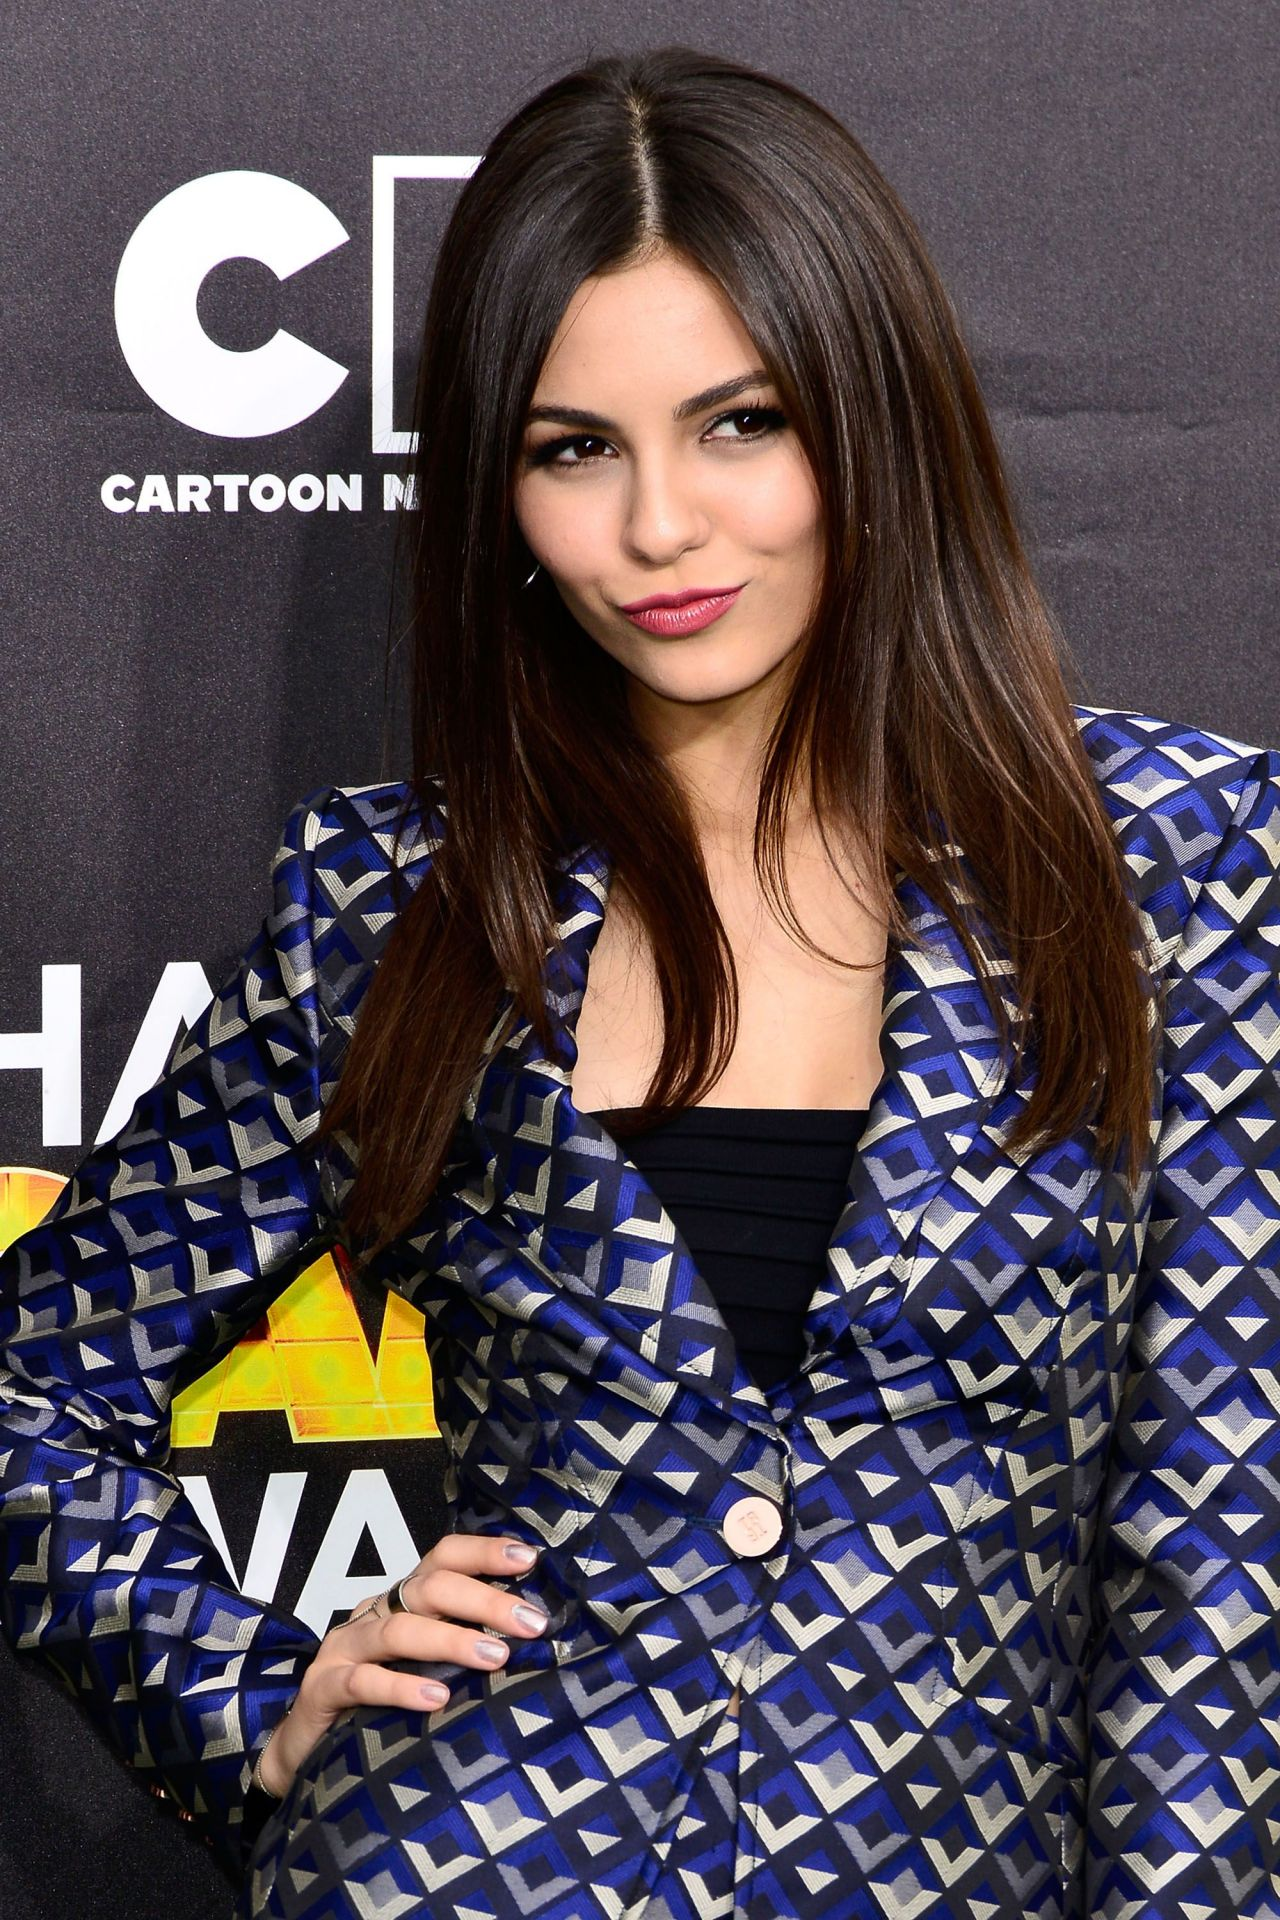 Victoria Justice Is Looking Seductive 4th Annual Hall Of